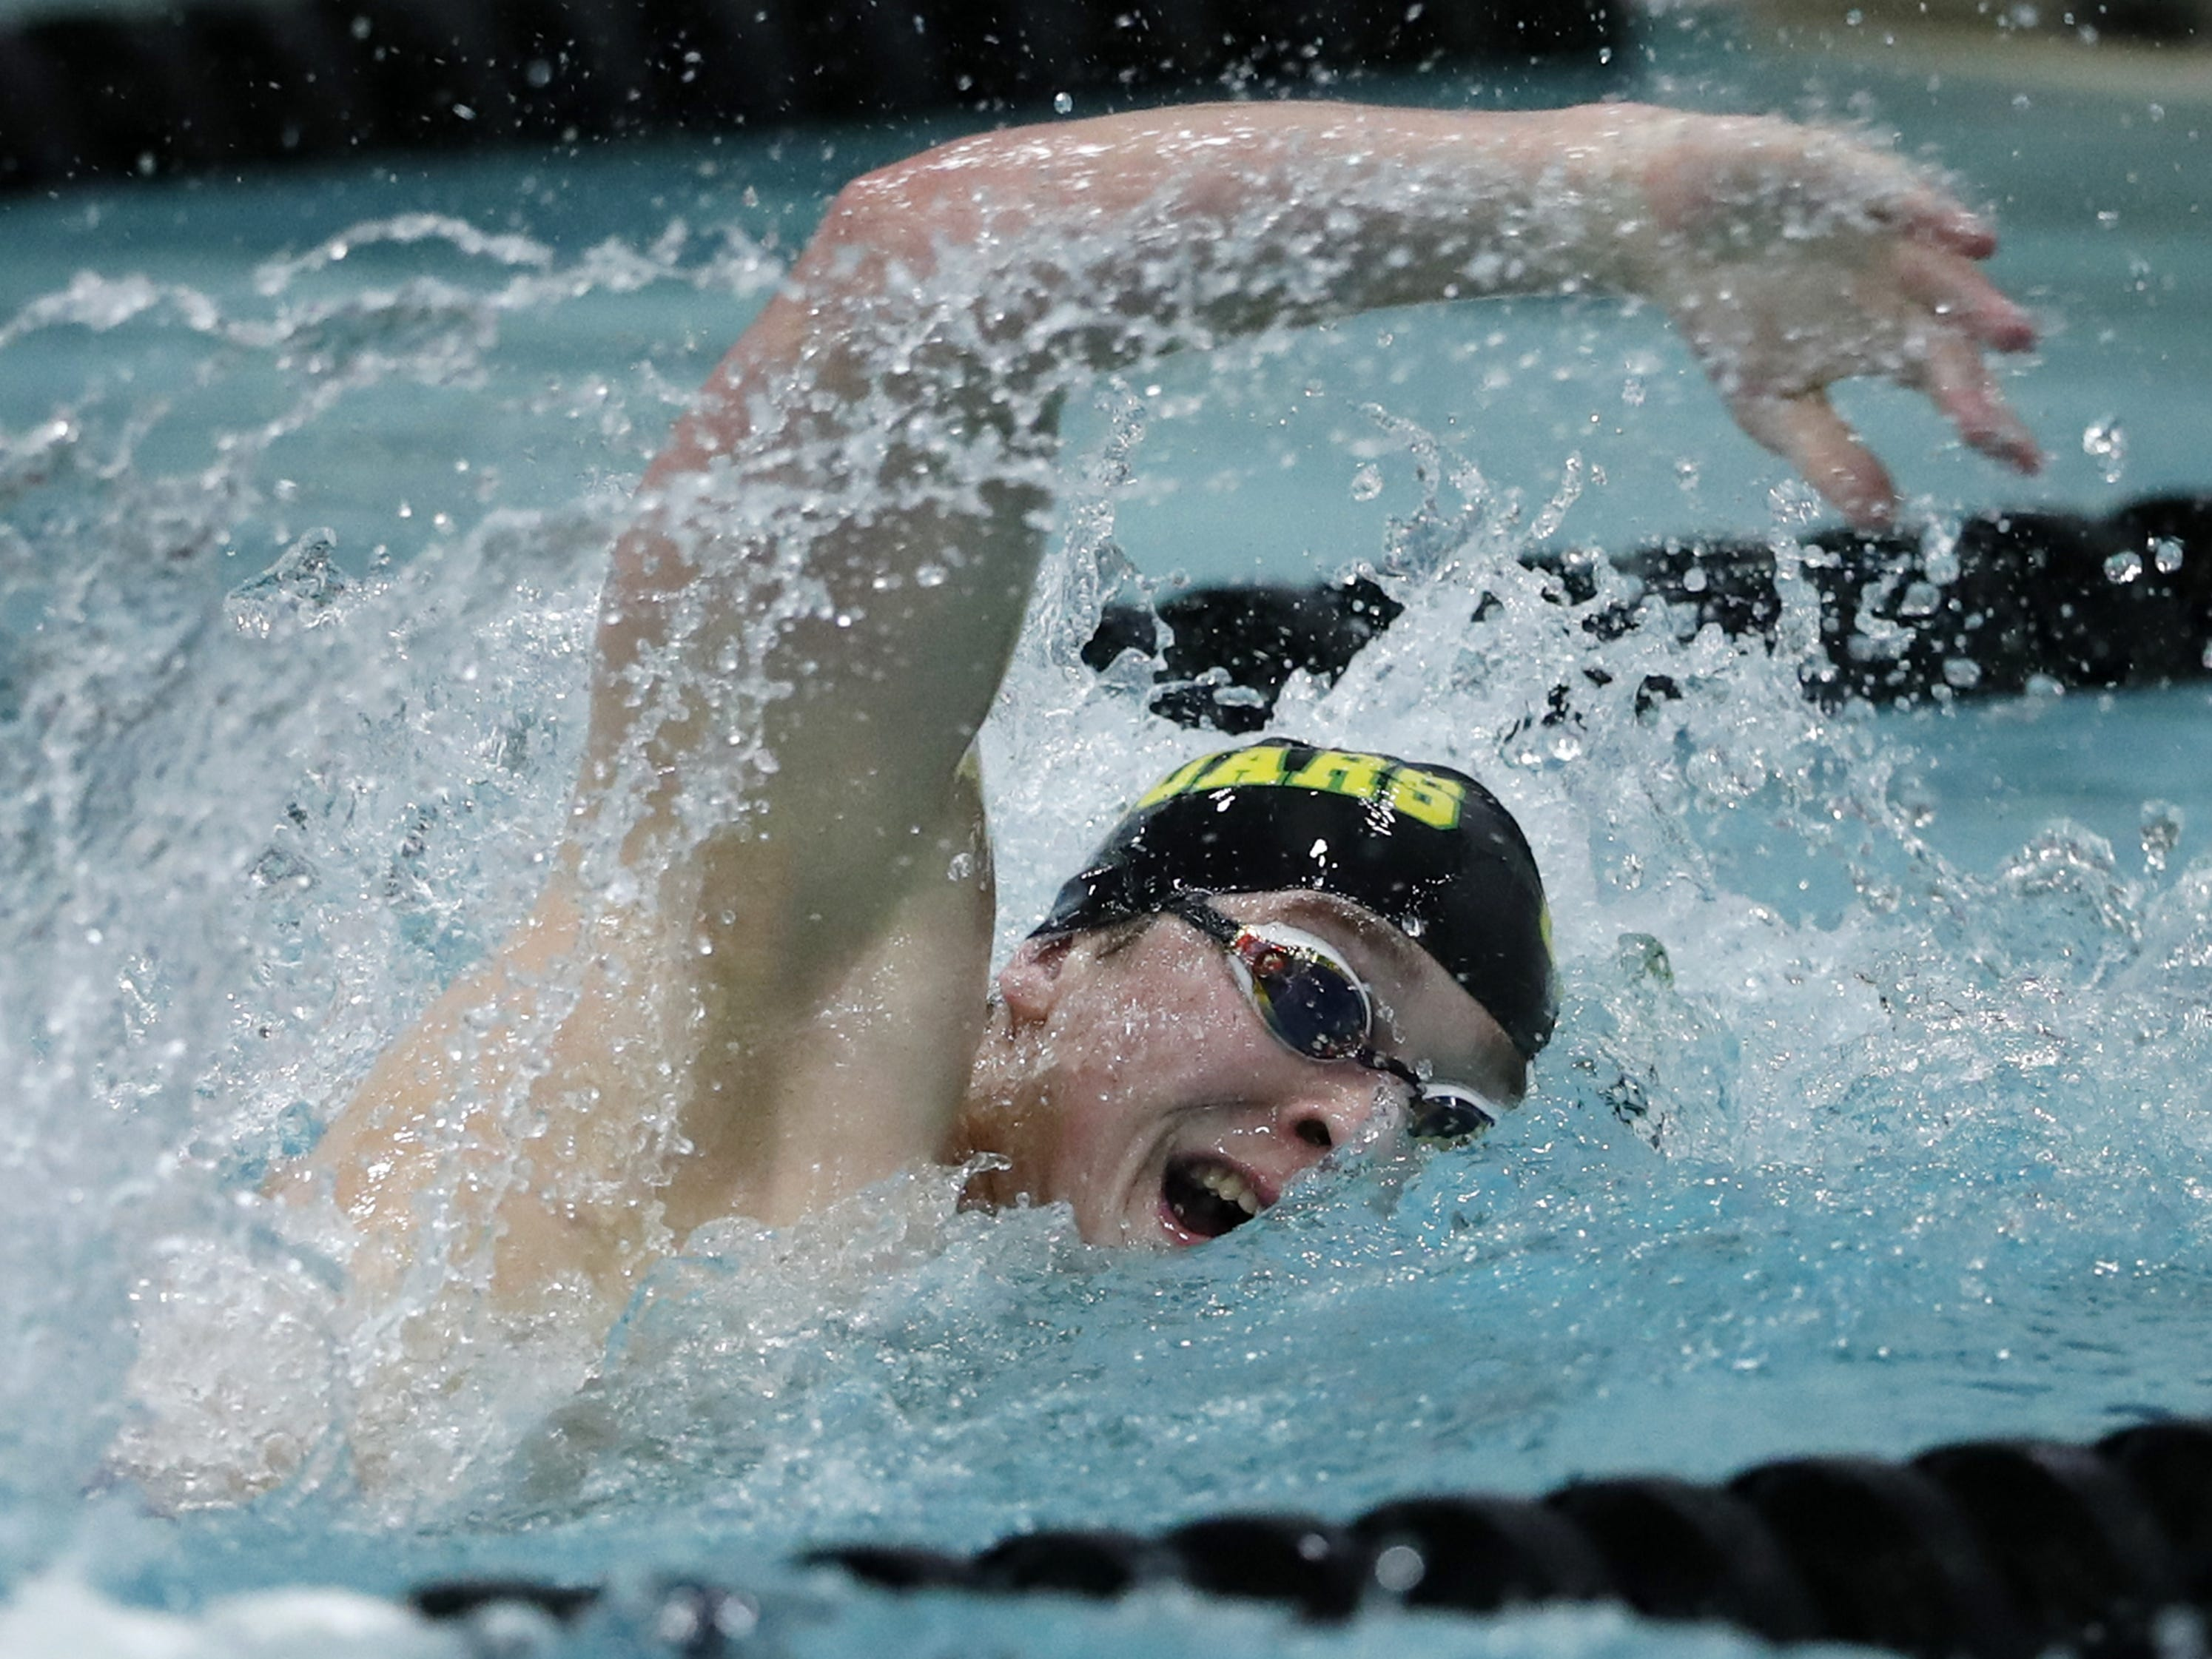 Ashwaubenon's 400-yard freestyle relay team competes during the Division 2 2019 State Boys Swimming and Diving Championships Friday, Feb. 15, 2019, at the UW Natatorium in Madison, Wis.